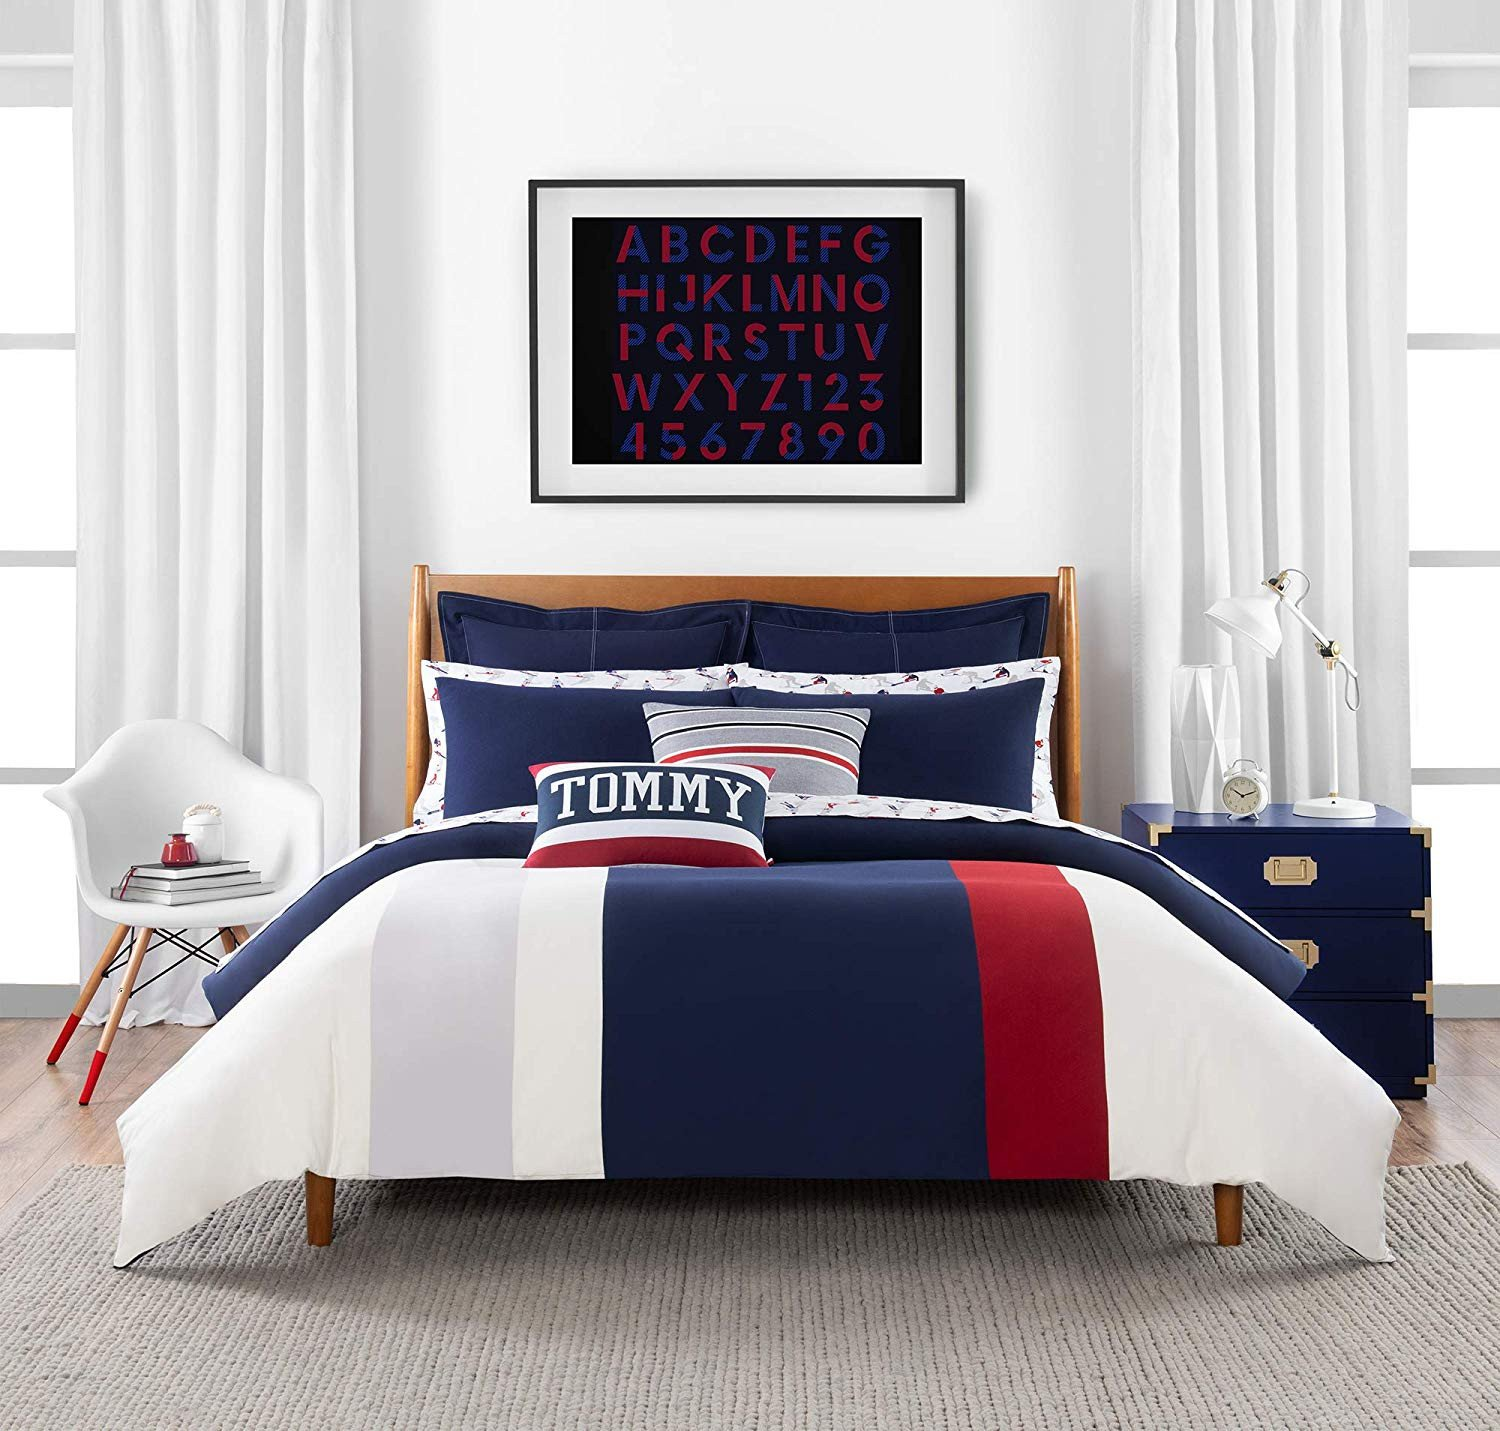 Used Queen Bedroom Set Elegant Amazon tommy Hilfiger Clash Of 85 Stripe Duvet Cover